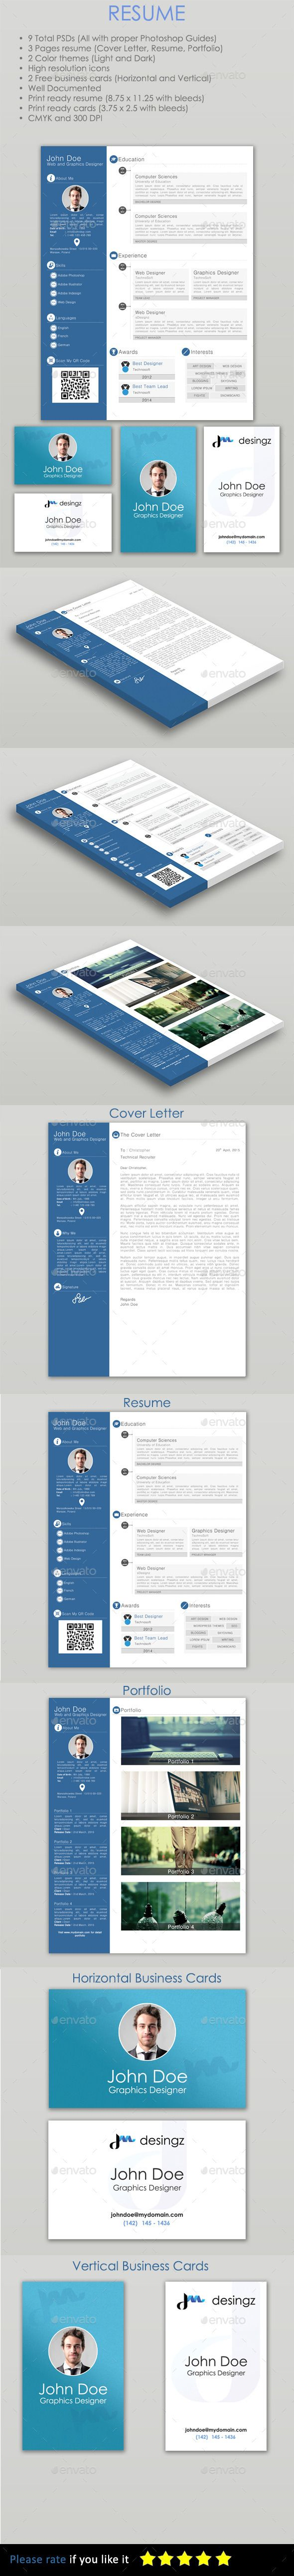 Best Resume Template Images On   Resume Resume